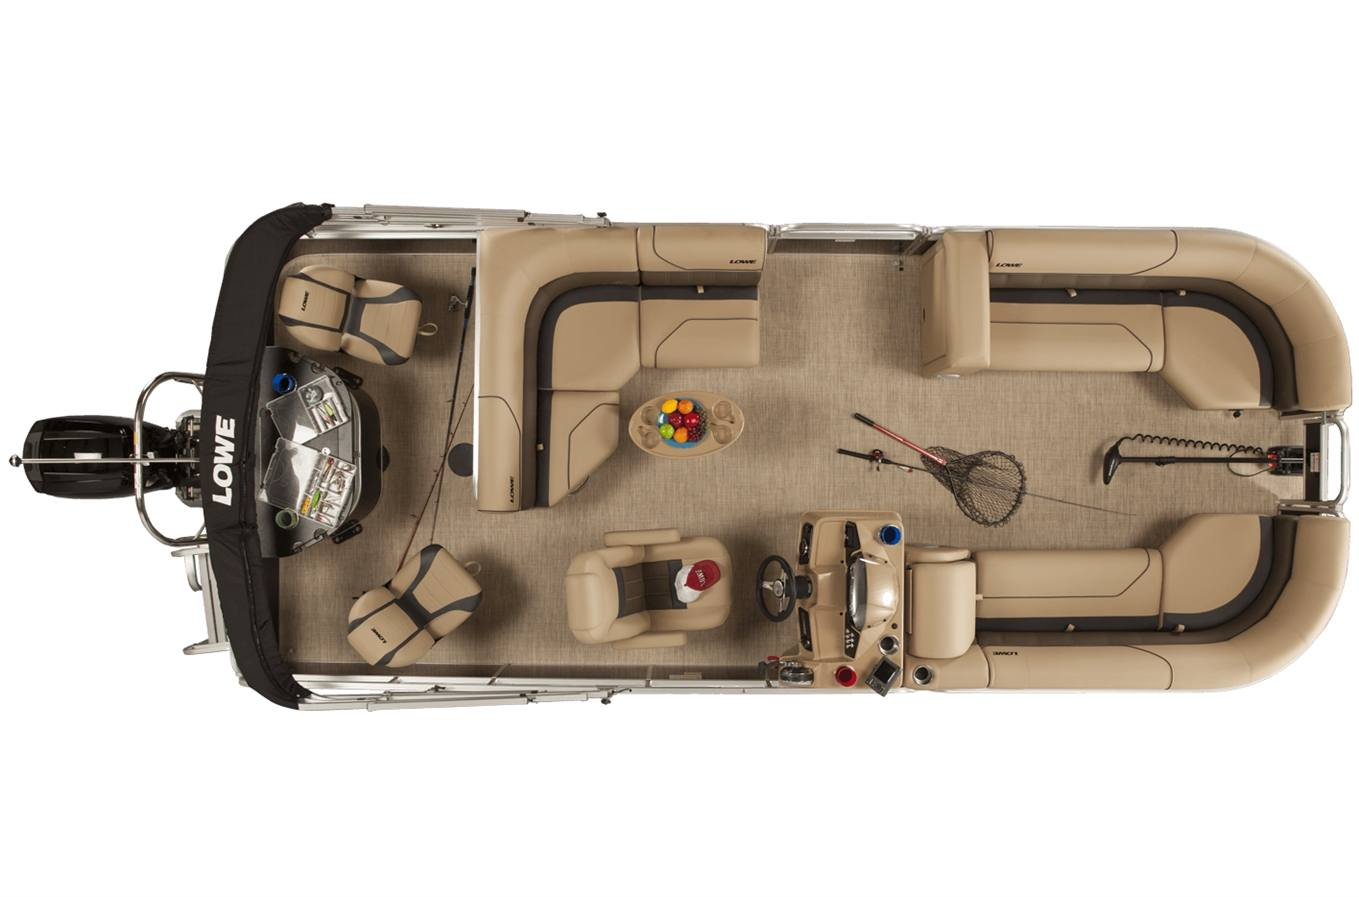 2019 Lowe Sf232 For Sale In Sacramento Ca Asfb Marine L 99 43 Quot Stand Alone Wiring Harness Previous